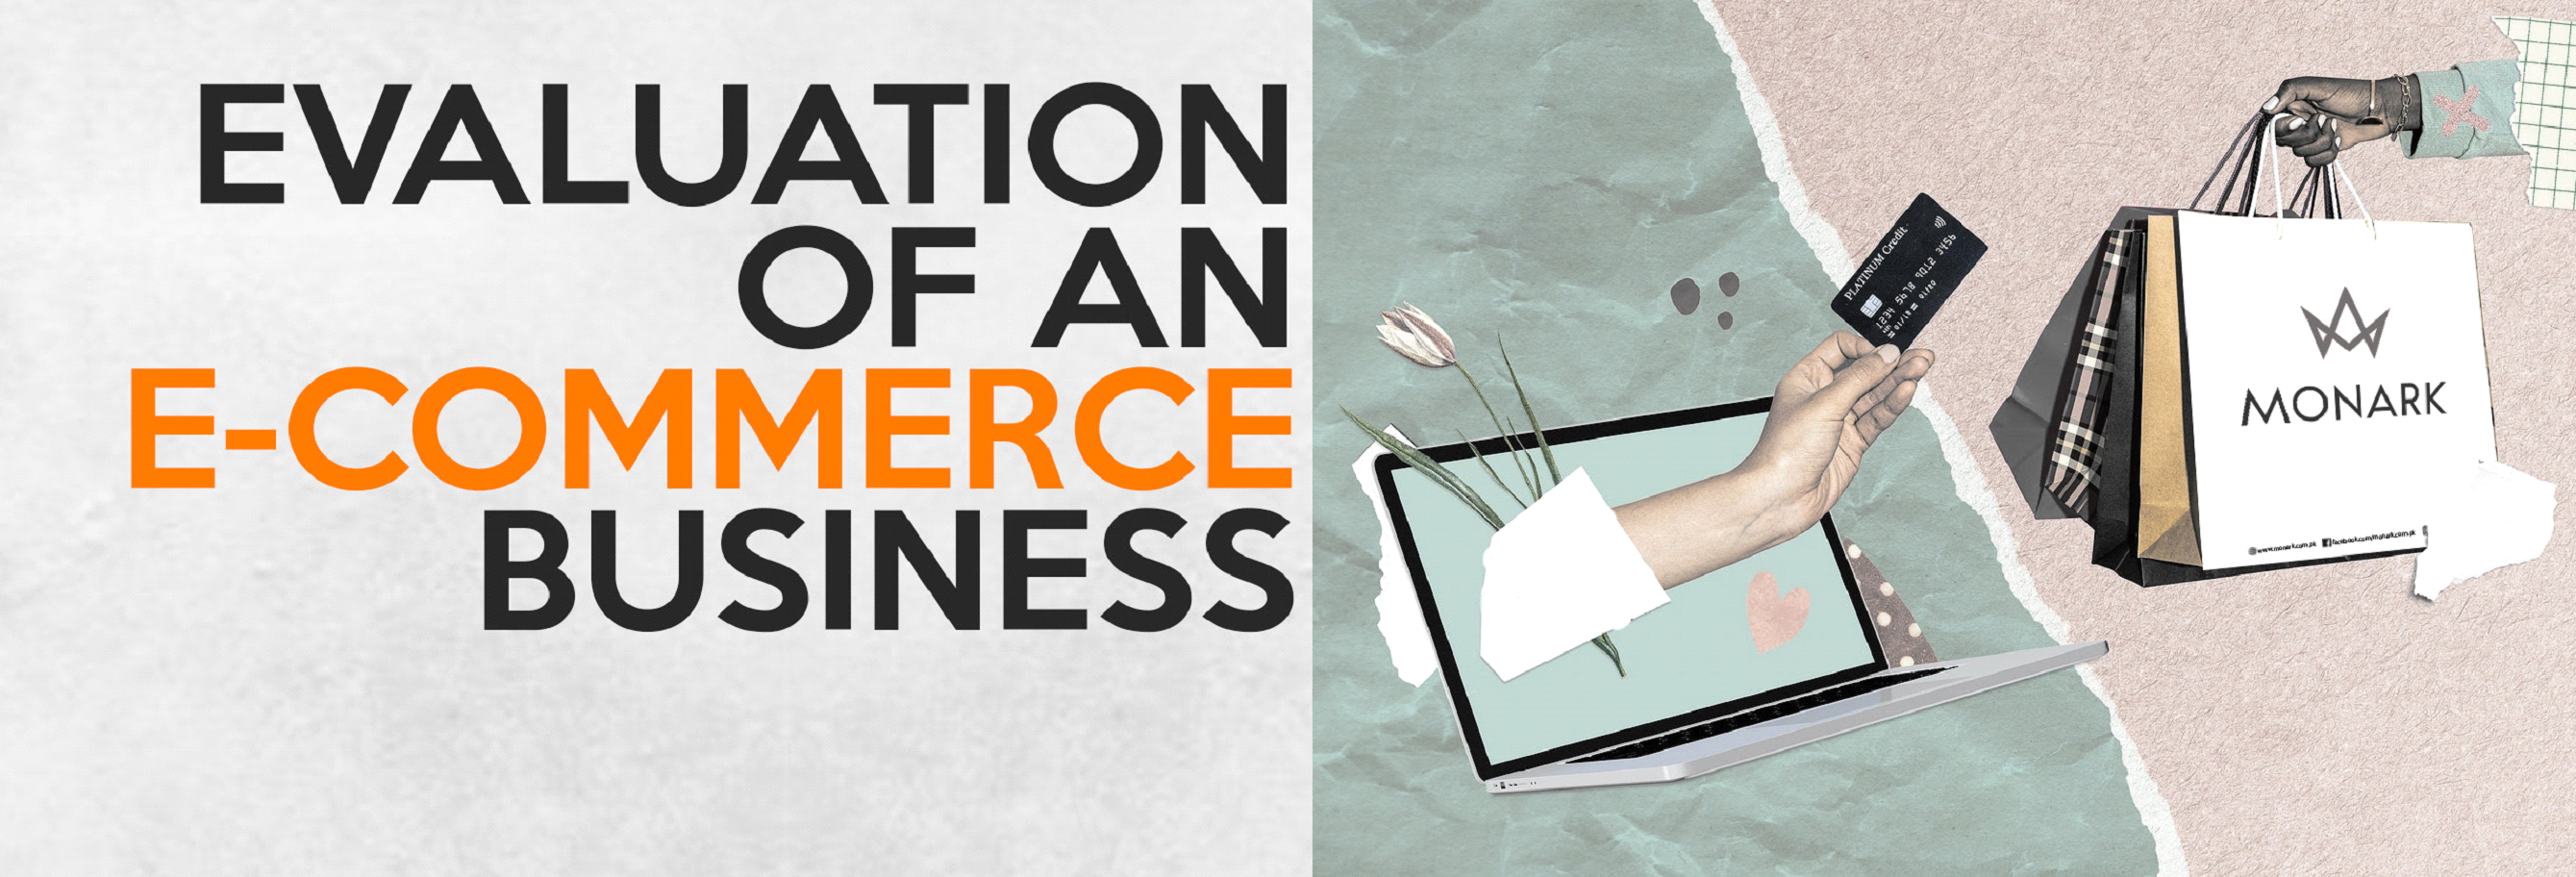 EVALUATION OF AN E-COMMERCE BUSINESS